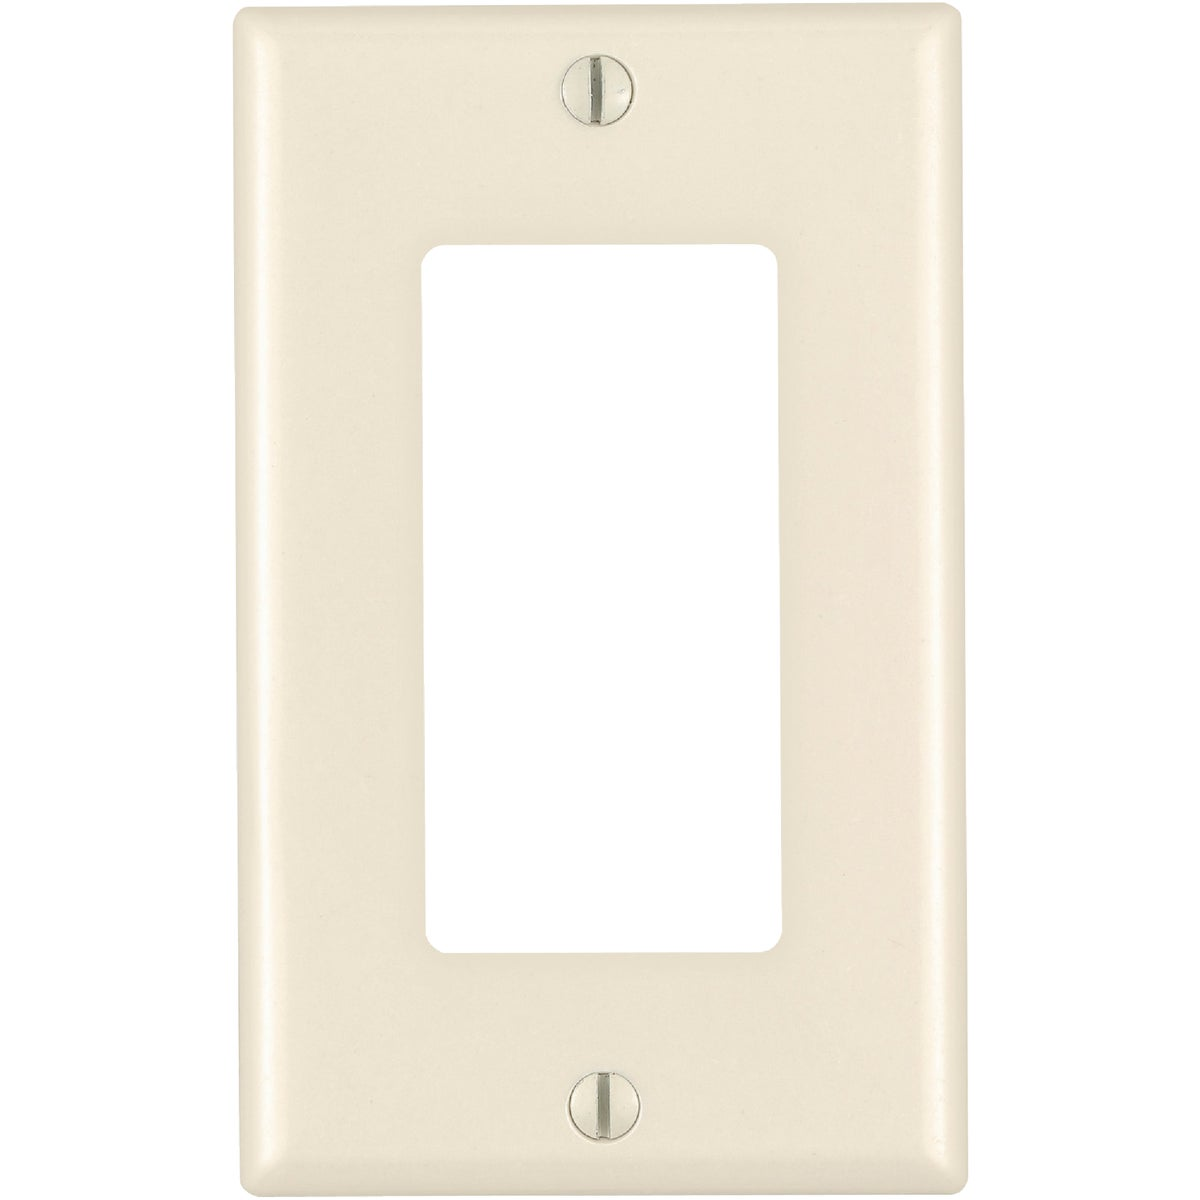 LT ALM GFI WALLPLATE - 130-80401-ONT by Leviton Mfg Co